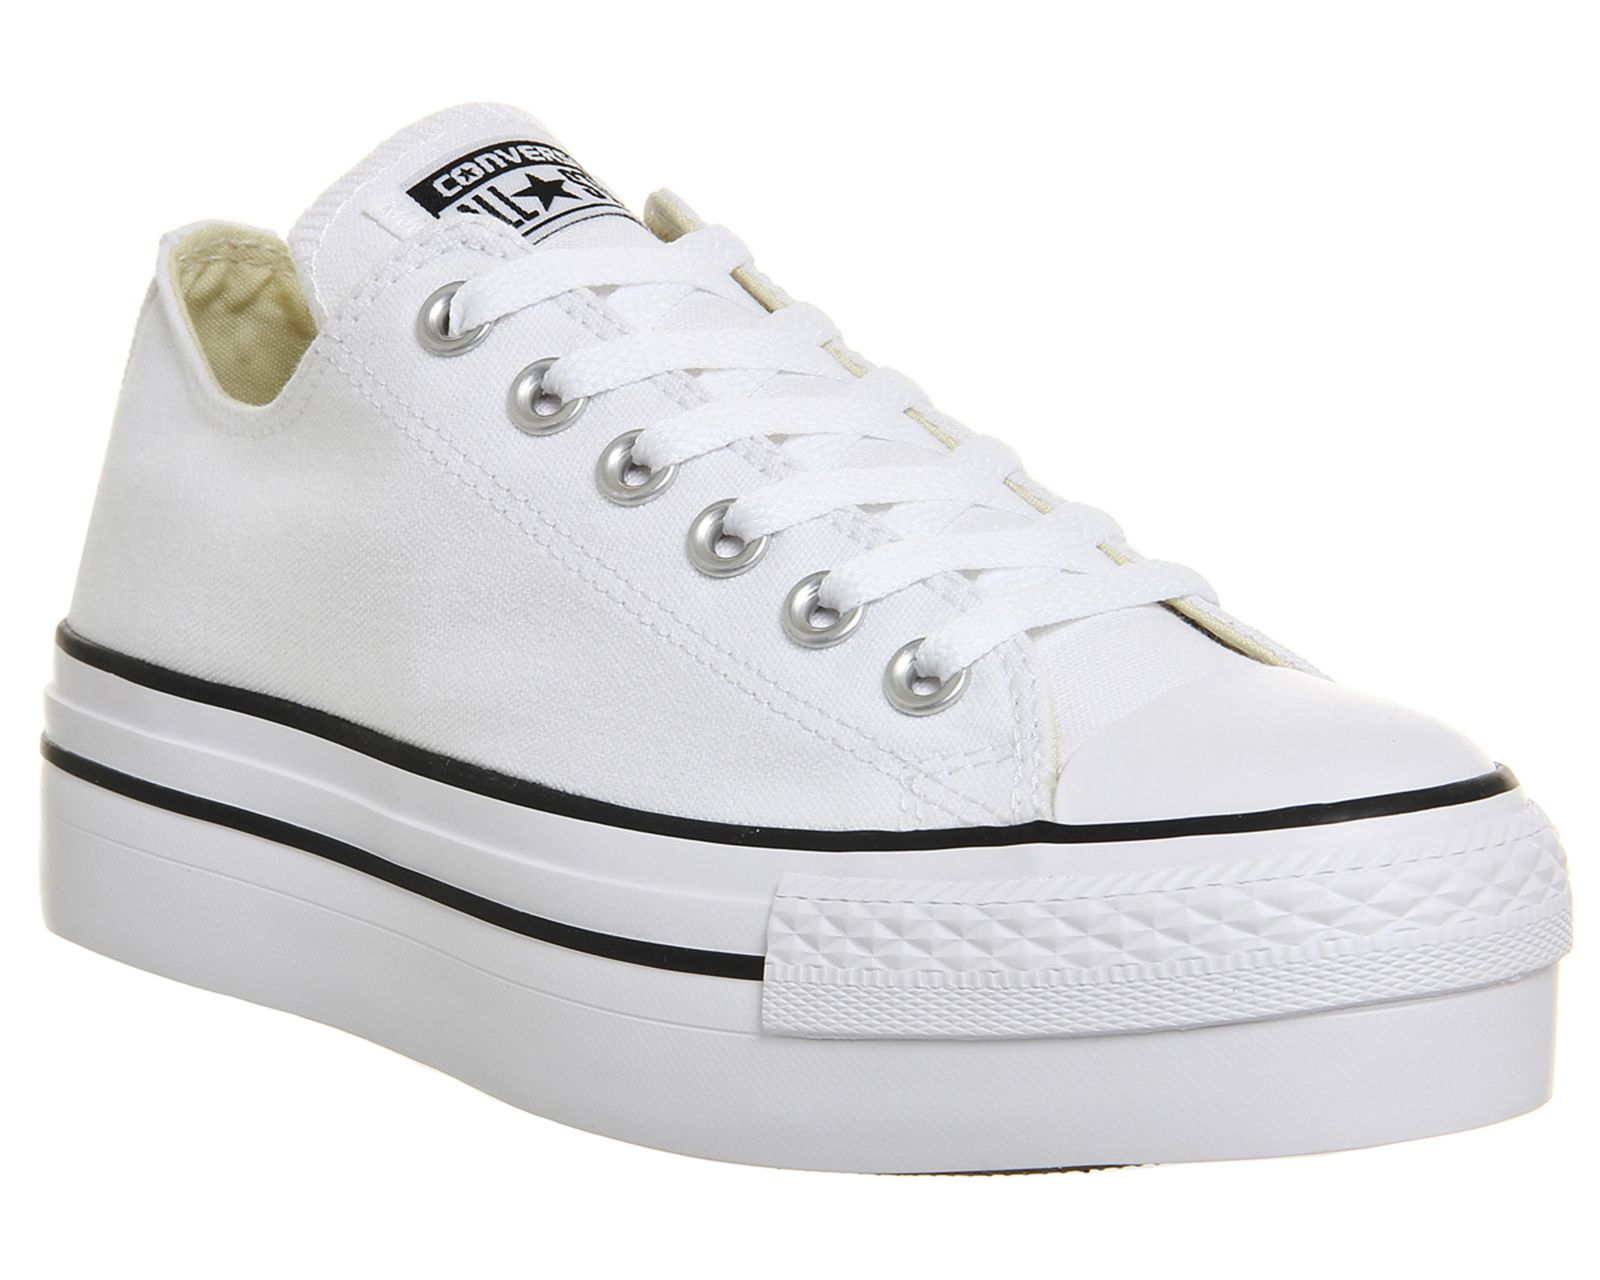 All Star Low Platform | Converse, Converse all star, Shoes